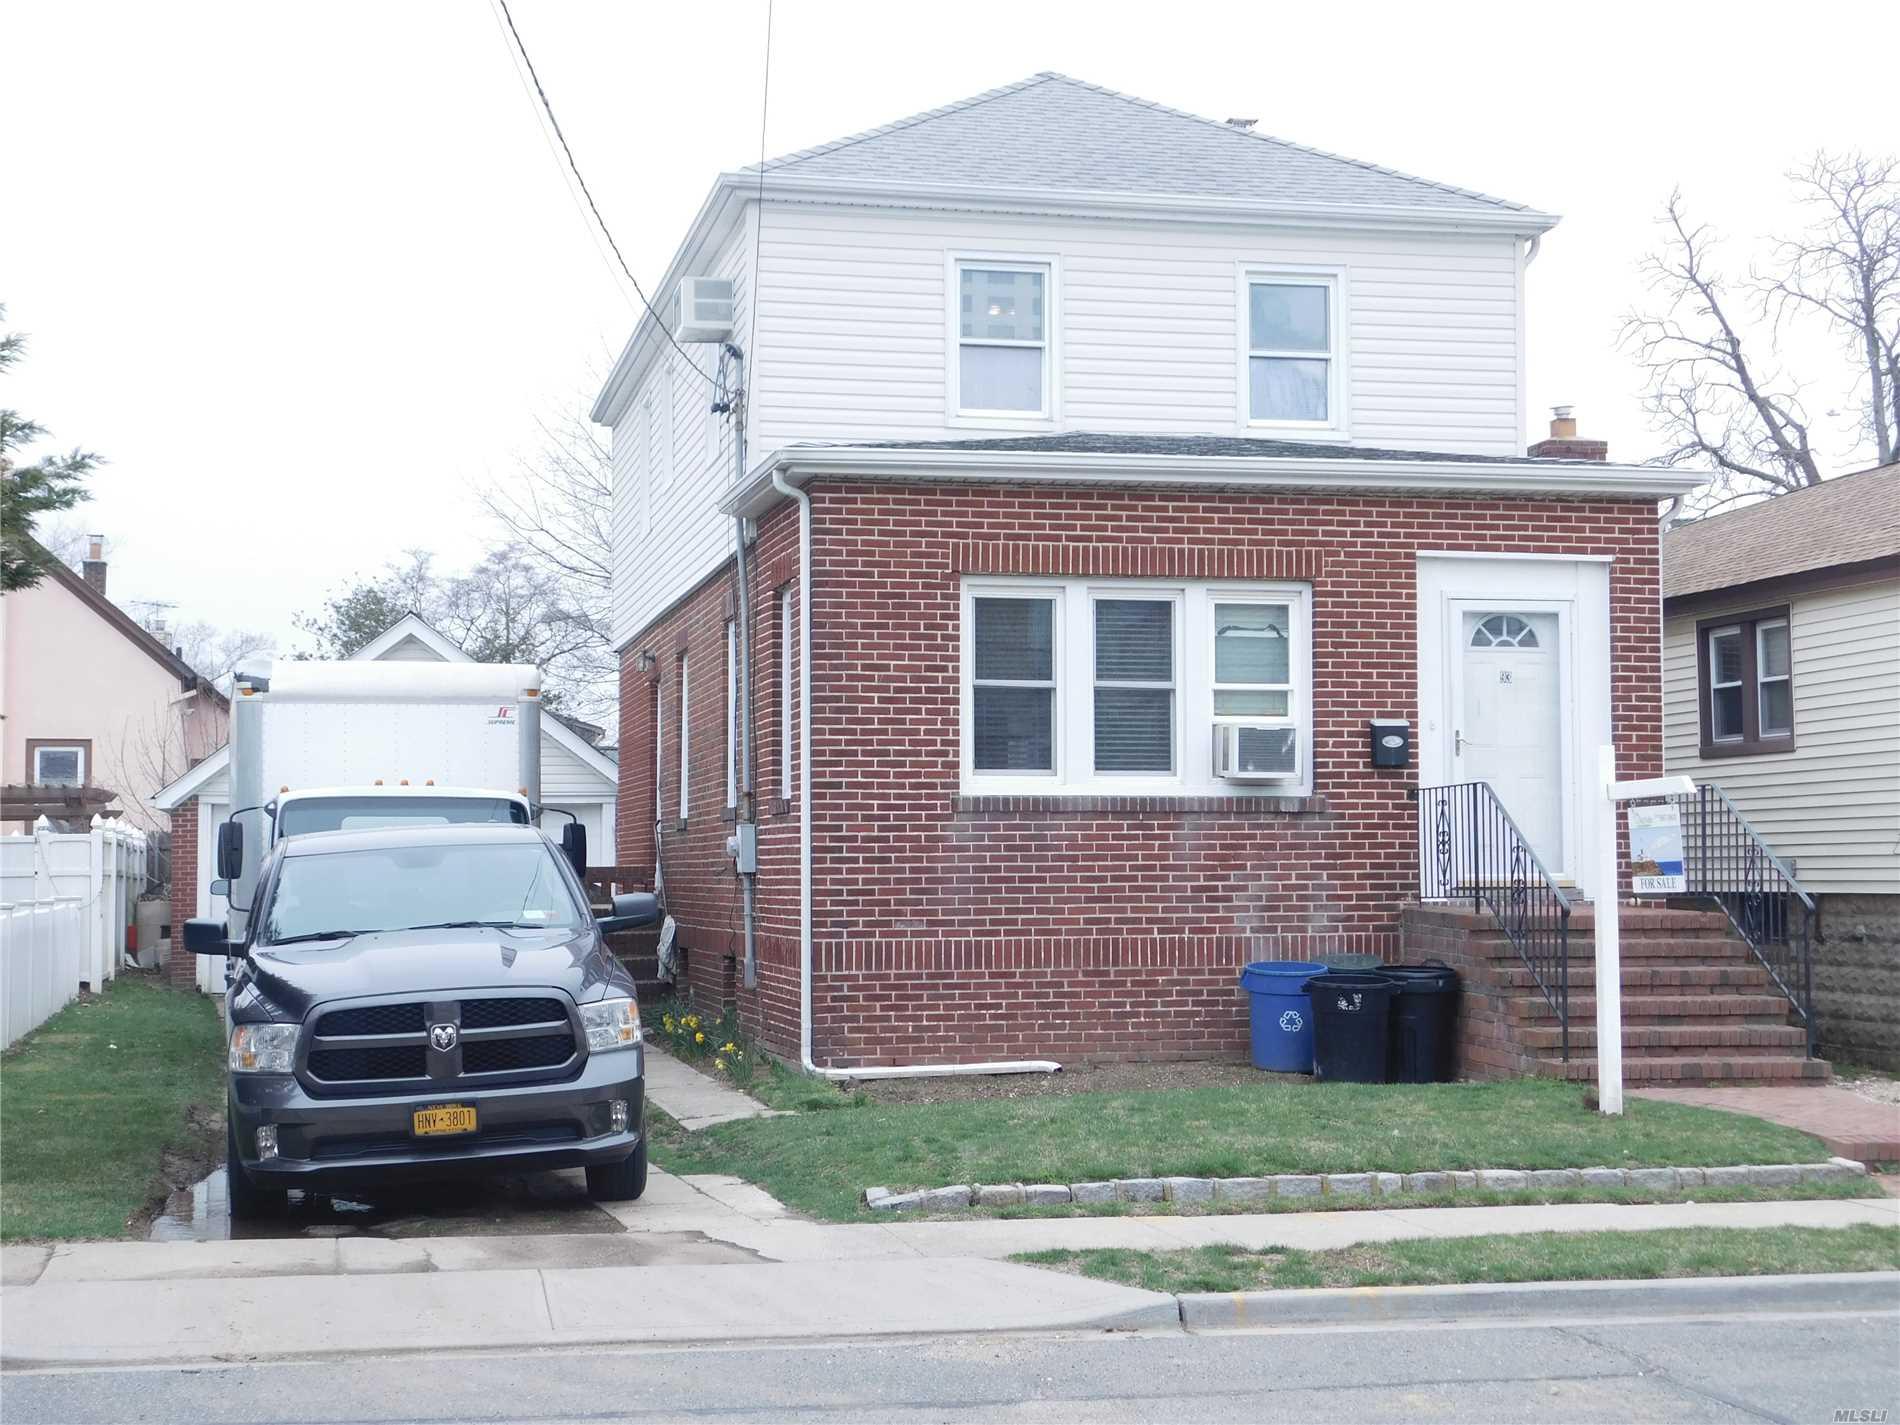 New Granite Eik w/SS appliances, large rooms, Brick & Vinyl Home, Two car garage. Just reduced $20, 000 for quick sale!